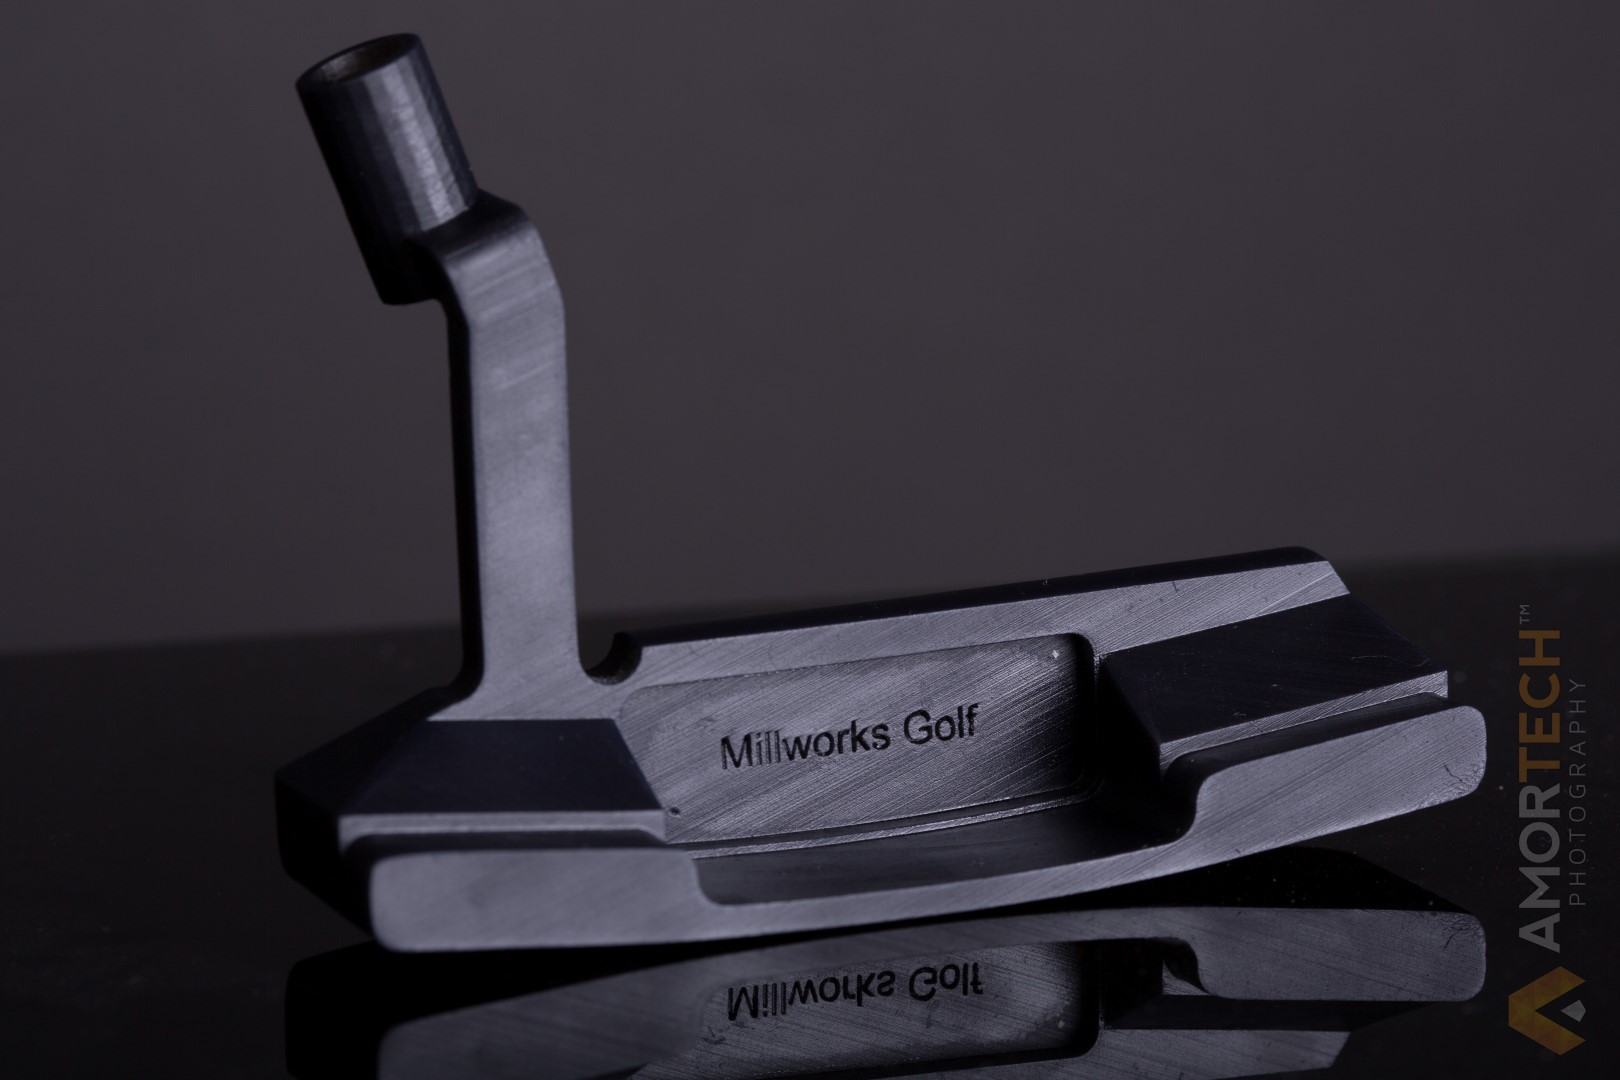 Millworks Golf Club Prototype